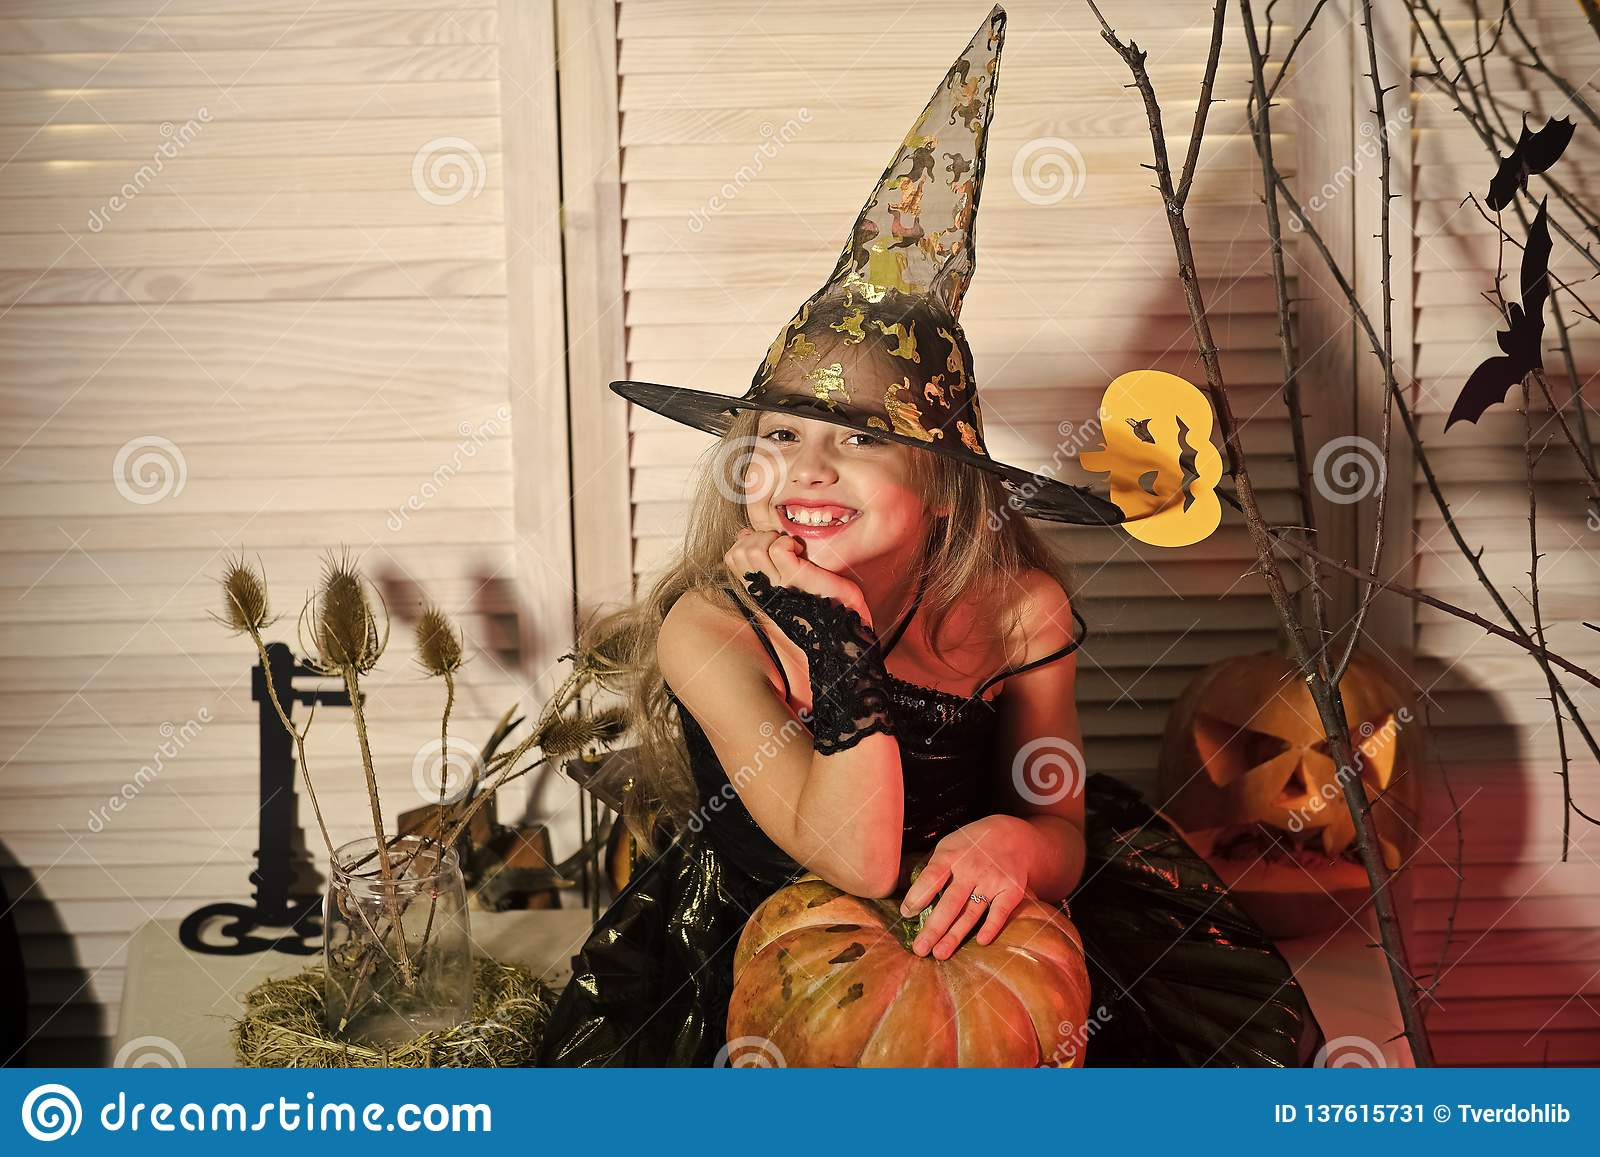 Halloween party and celebration concept. Little witch with Halloween decor